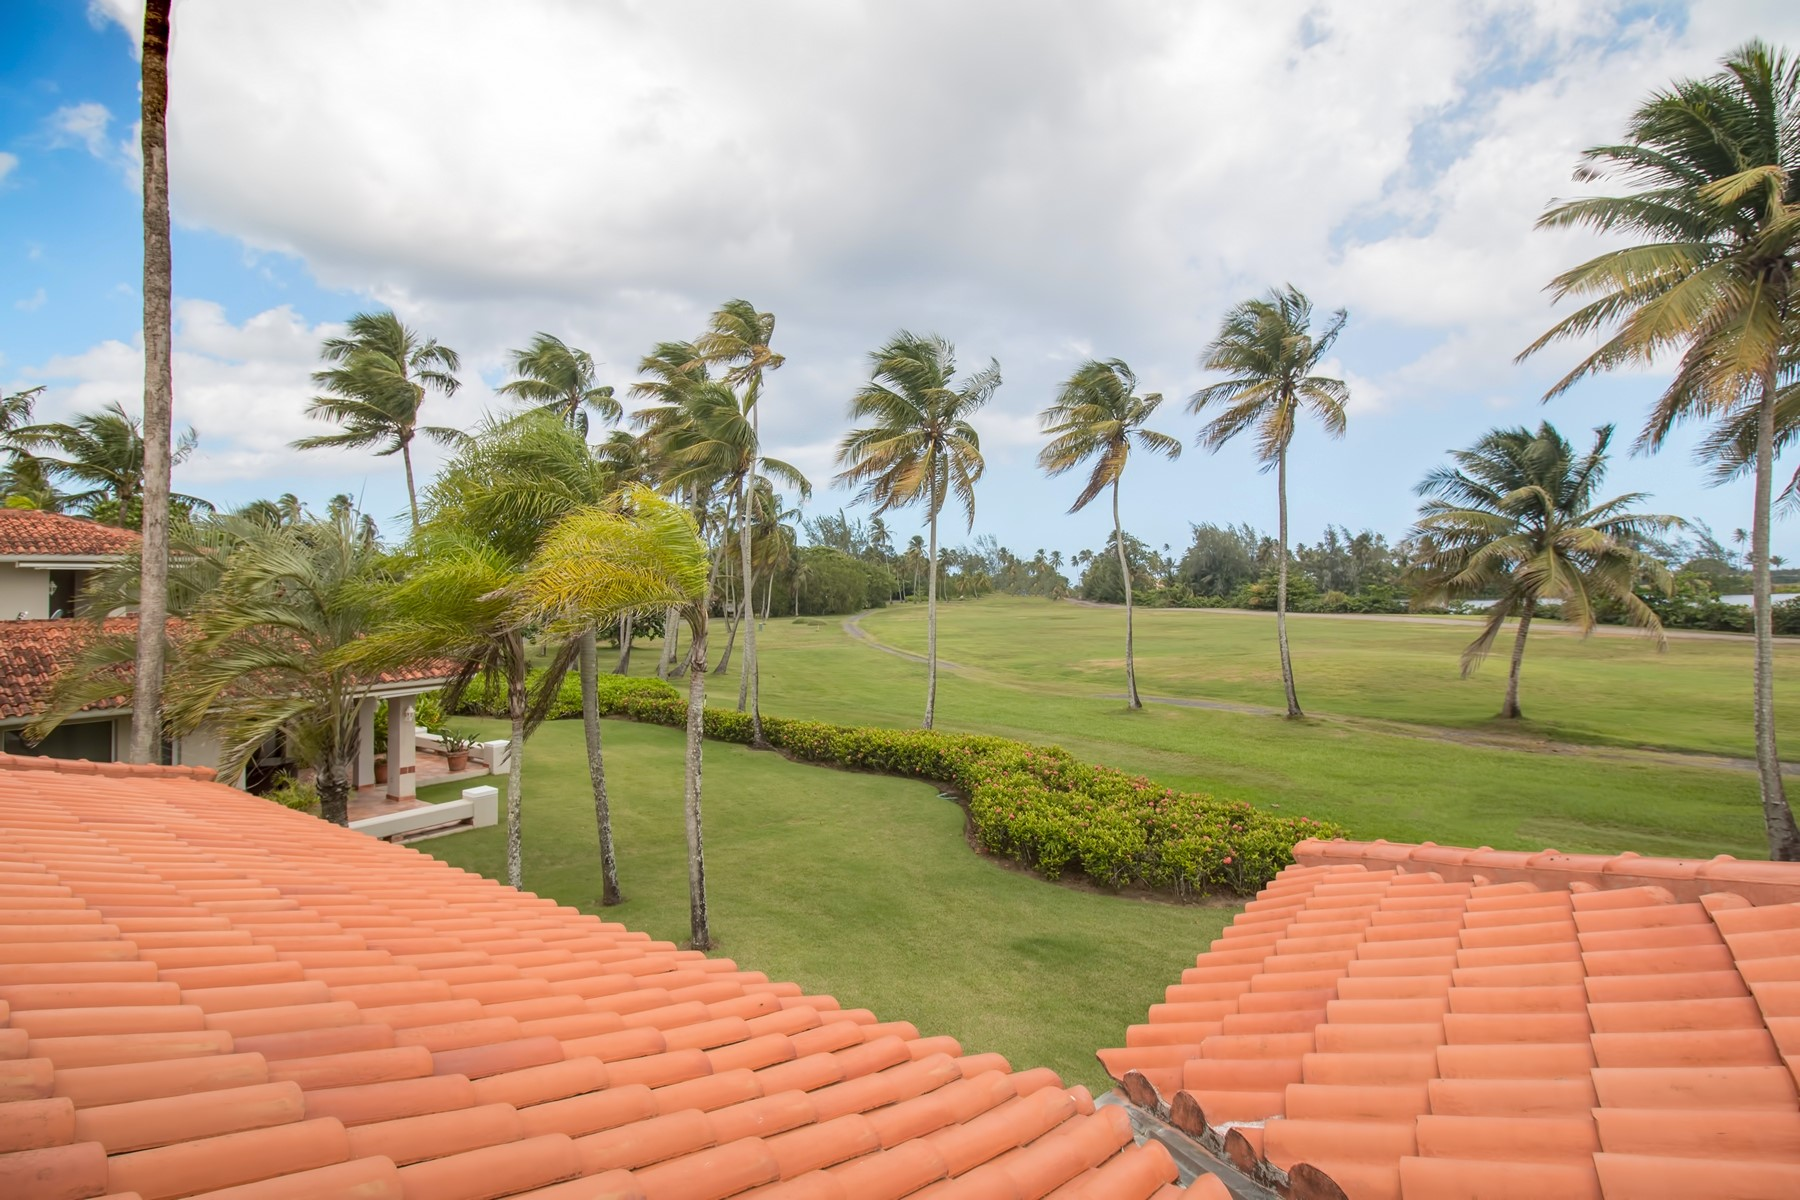 Additional photo for property listing at Mediterranean Villa at The Greens 3 Green Villas Drive Dorado Beach, Puerto Rico 00646 Puerto Rico